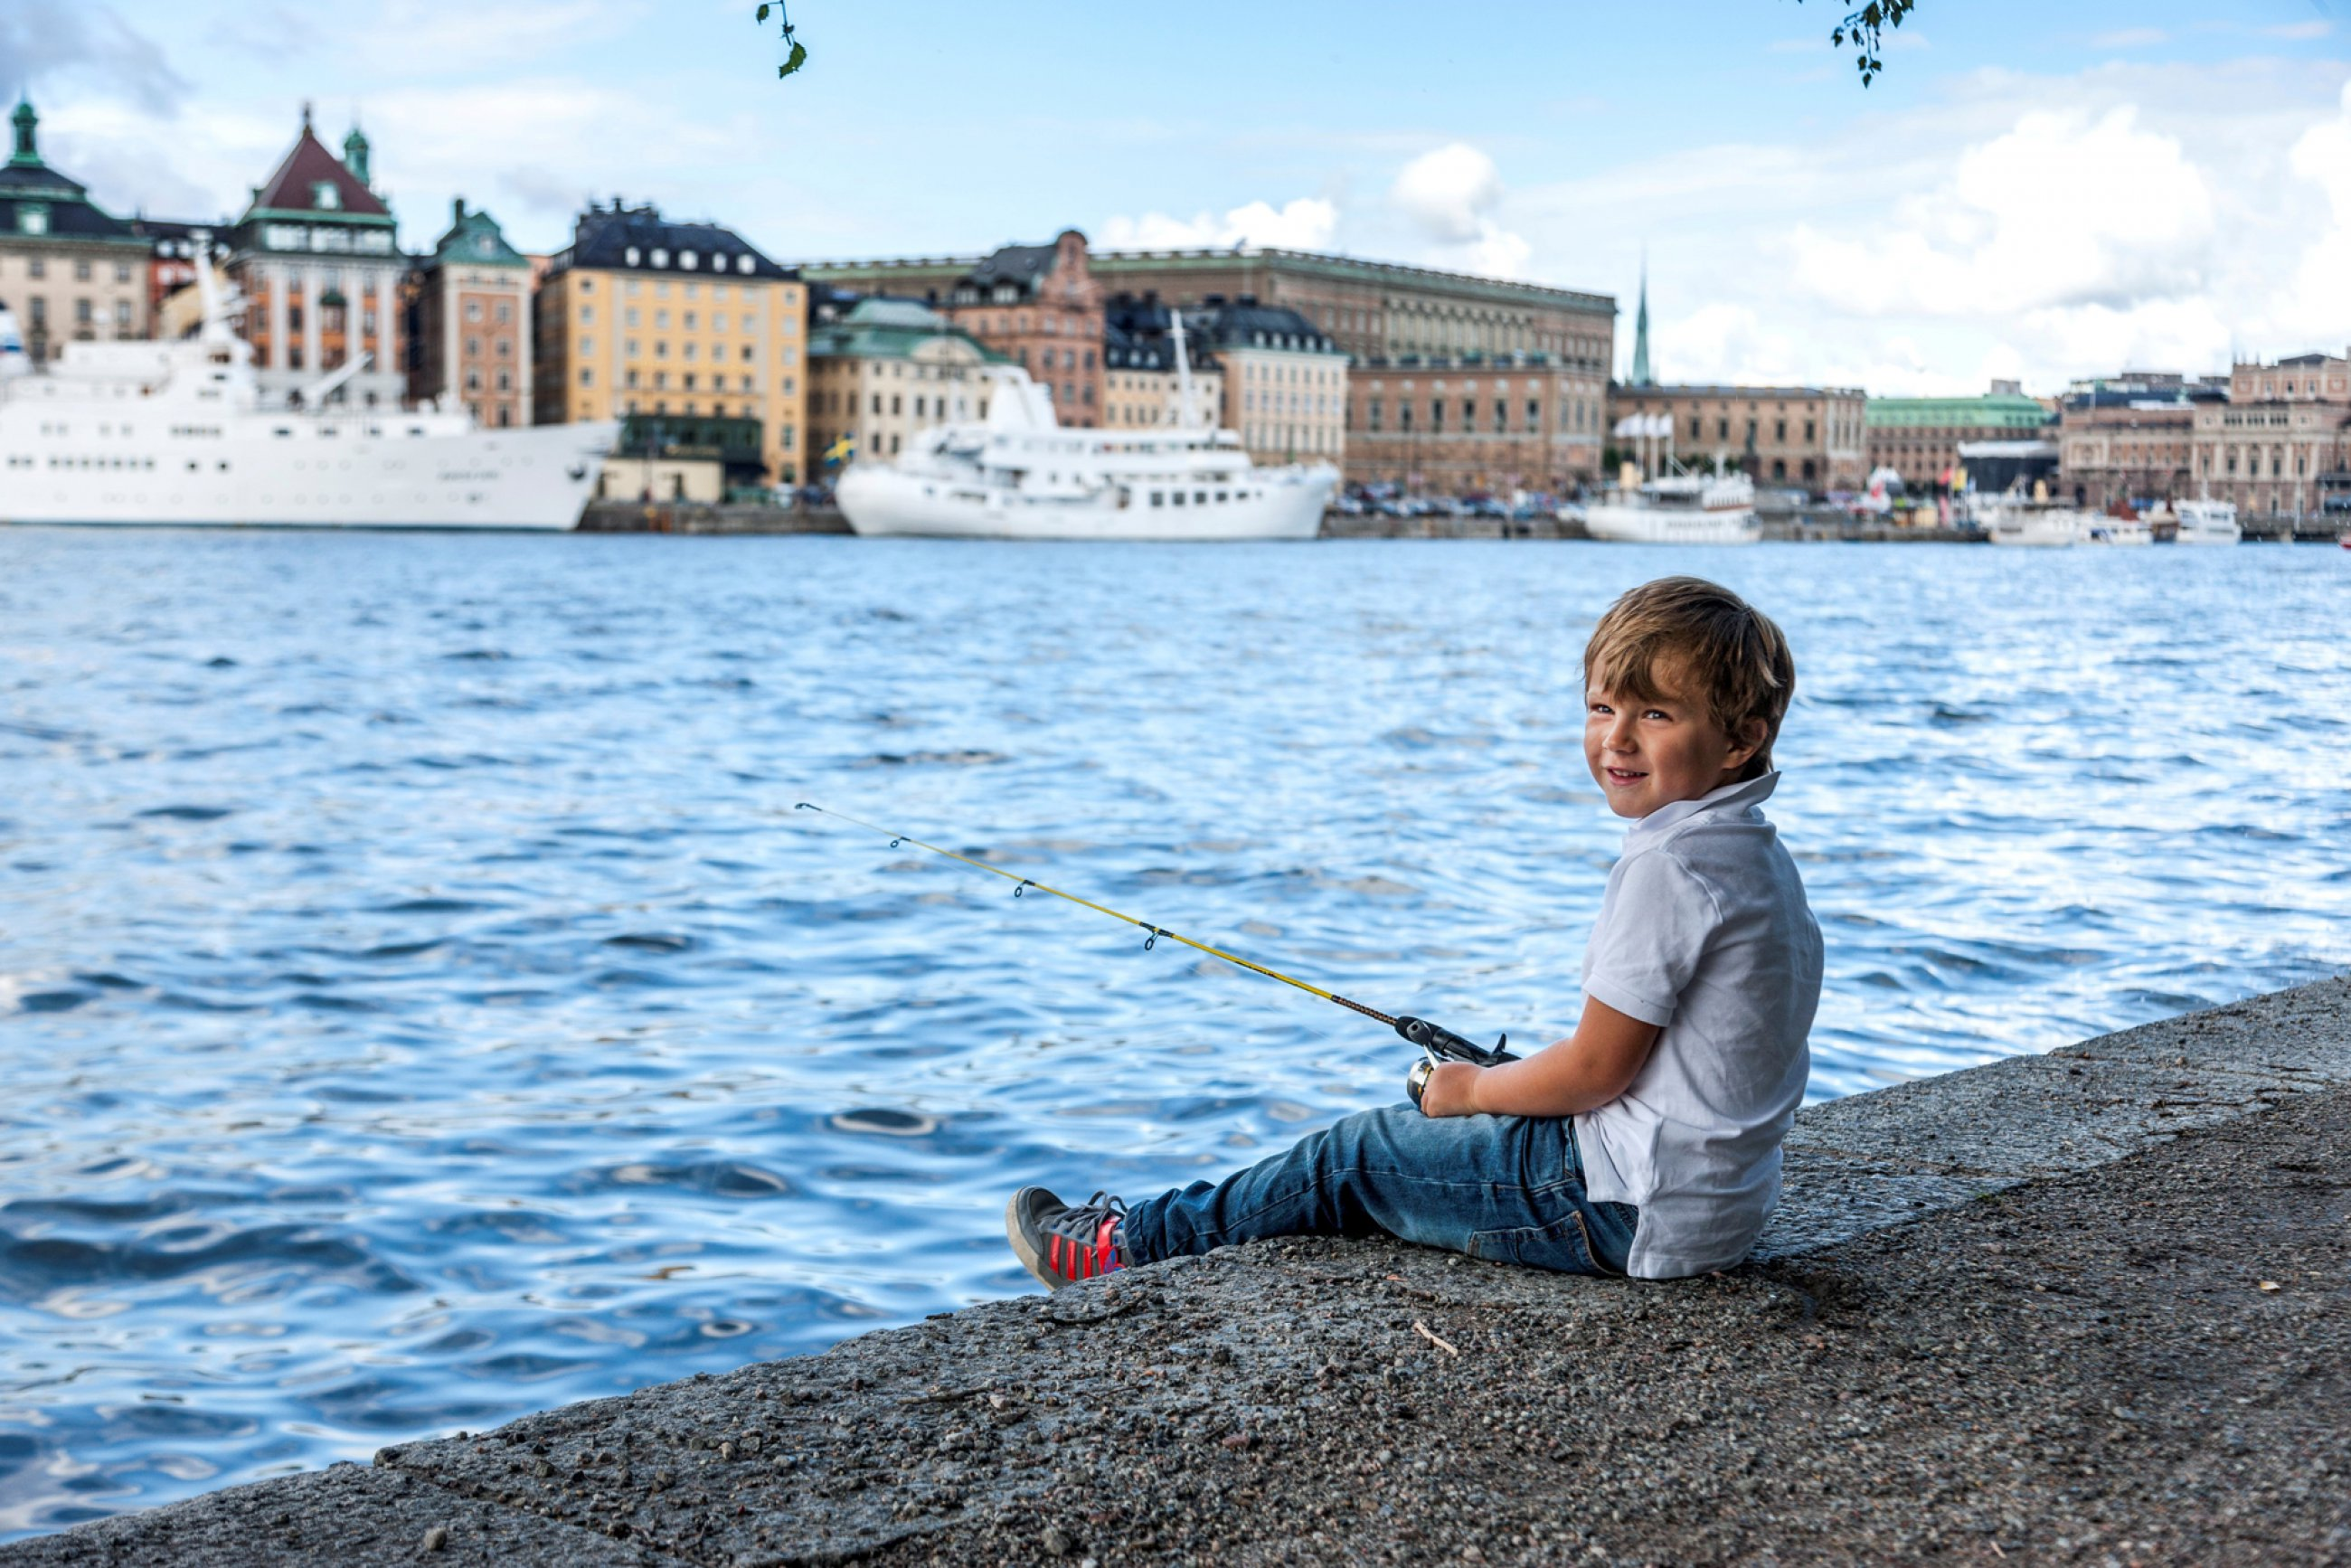 https://bubo.sk/uploads/galleries/5038/svedsko-stockholm-trygg-fishing-sthlm-14-050-822-high-res.jpg